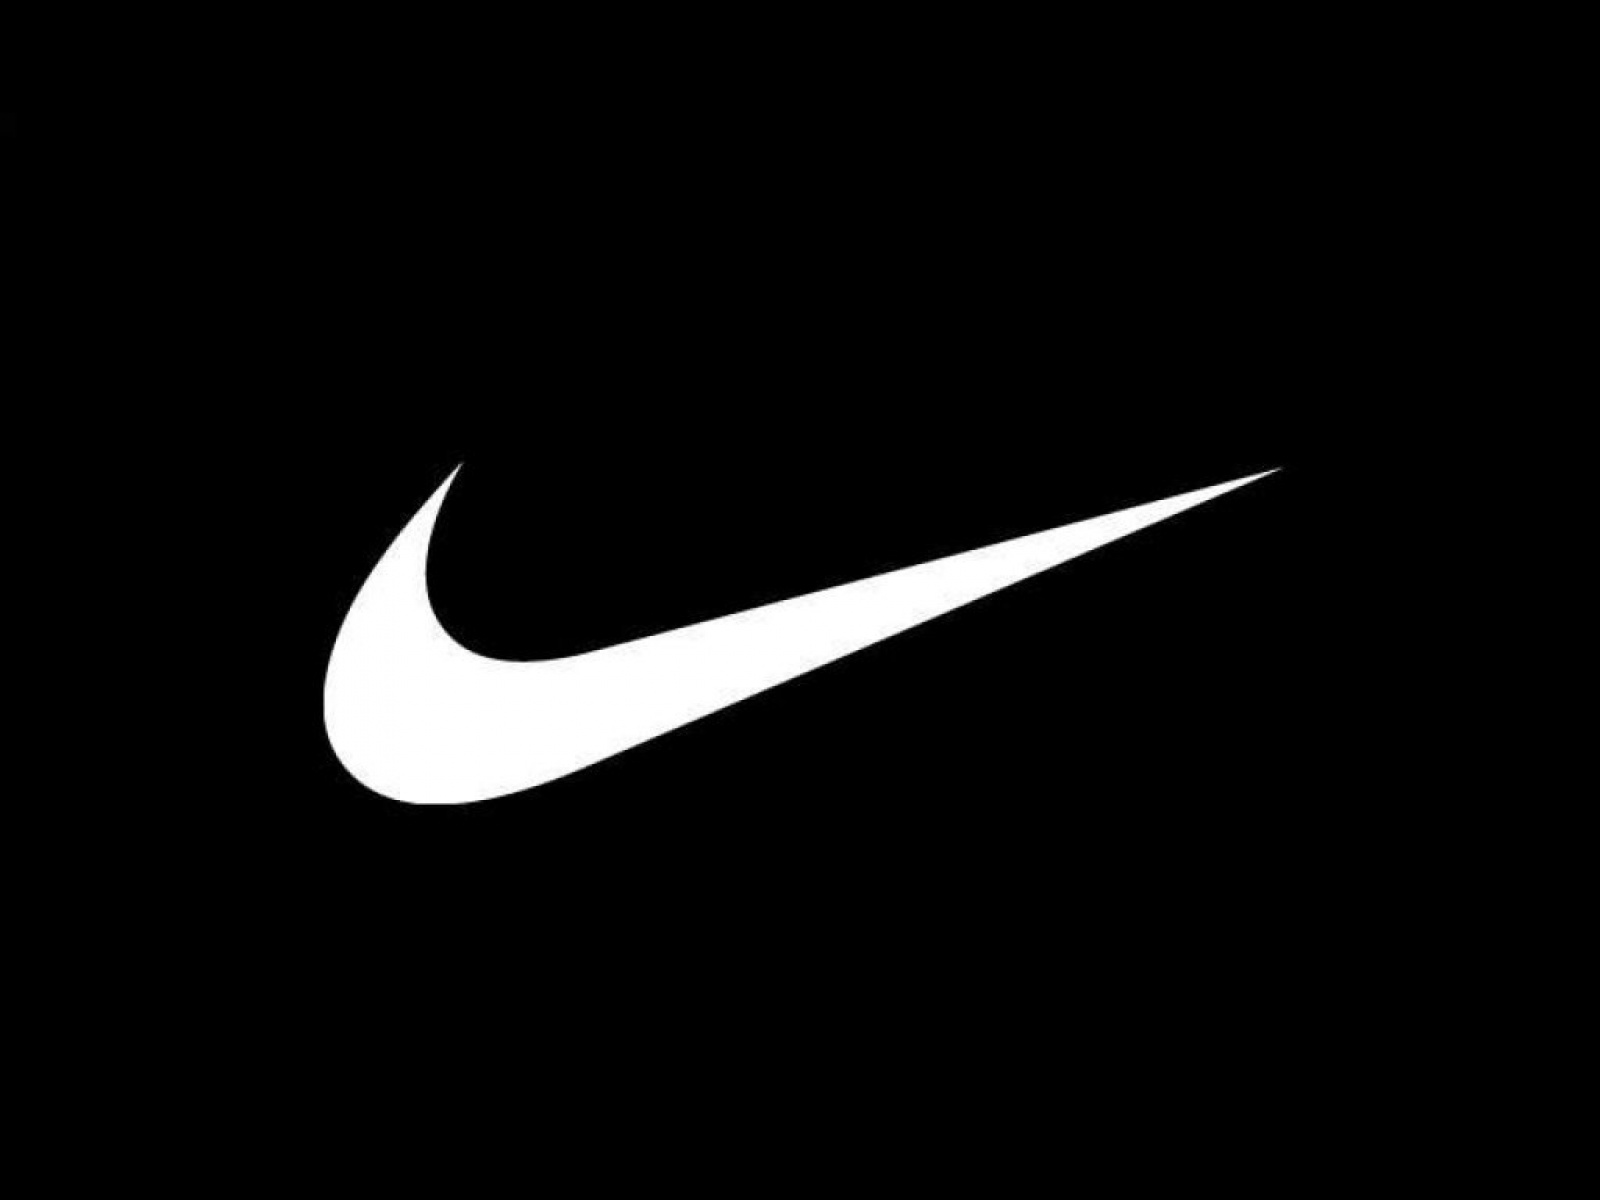 Nike Golf Wallpapers 2738 Hd Wallpapers in Sports   Imagescicom 1600x1200